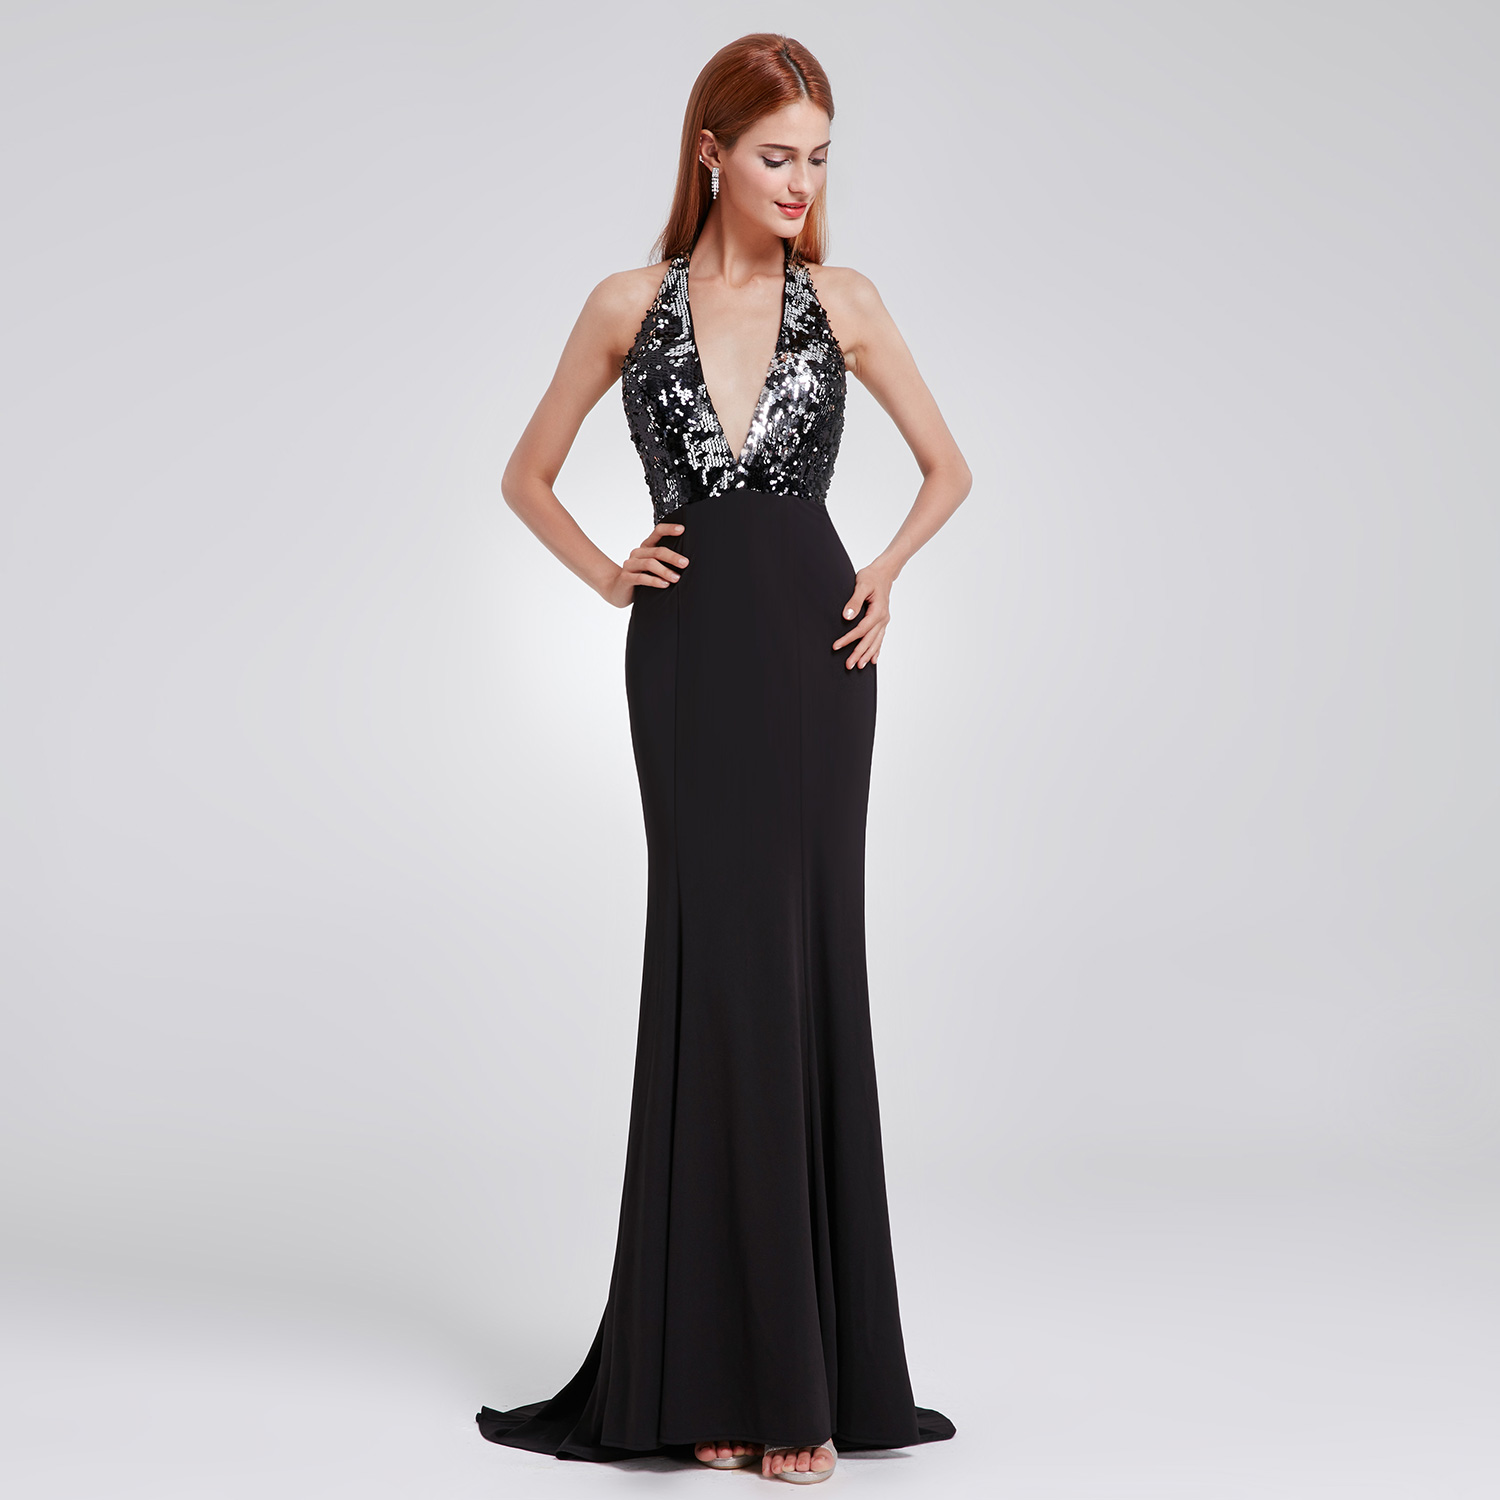 c3822461eea Halter Neck Backless Prom Dress - Data Dynamic AG